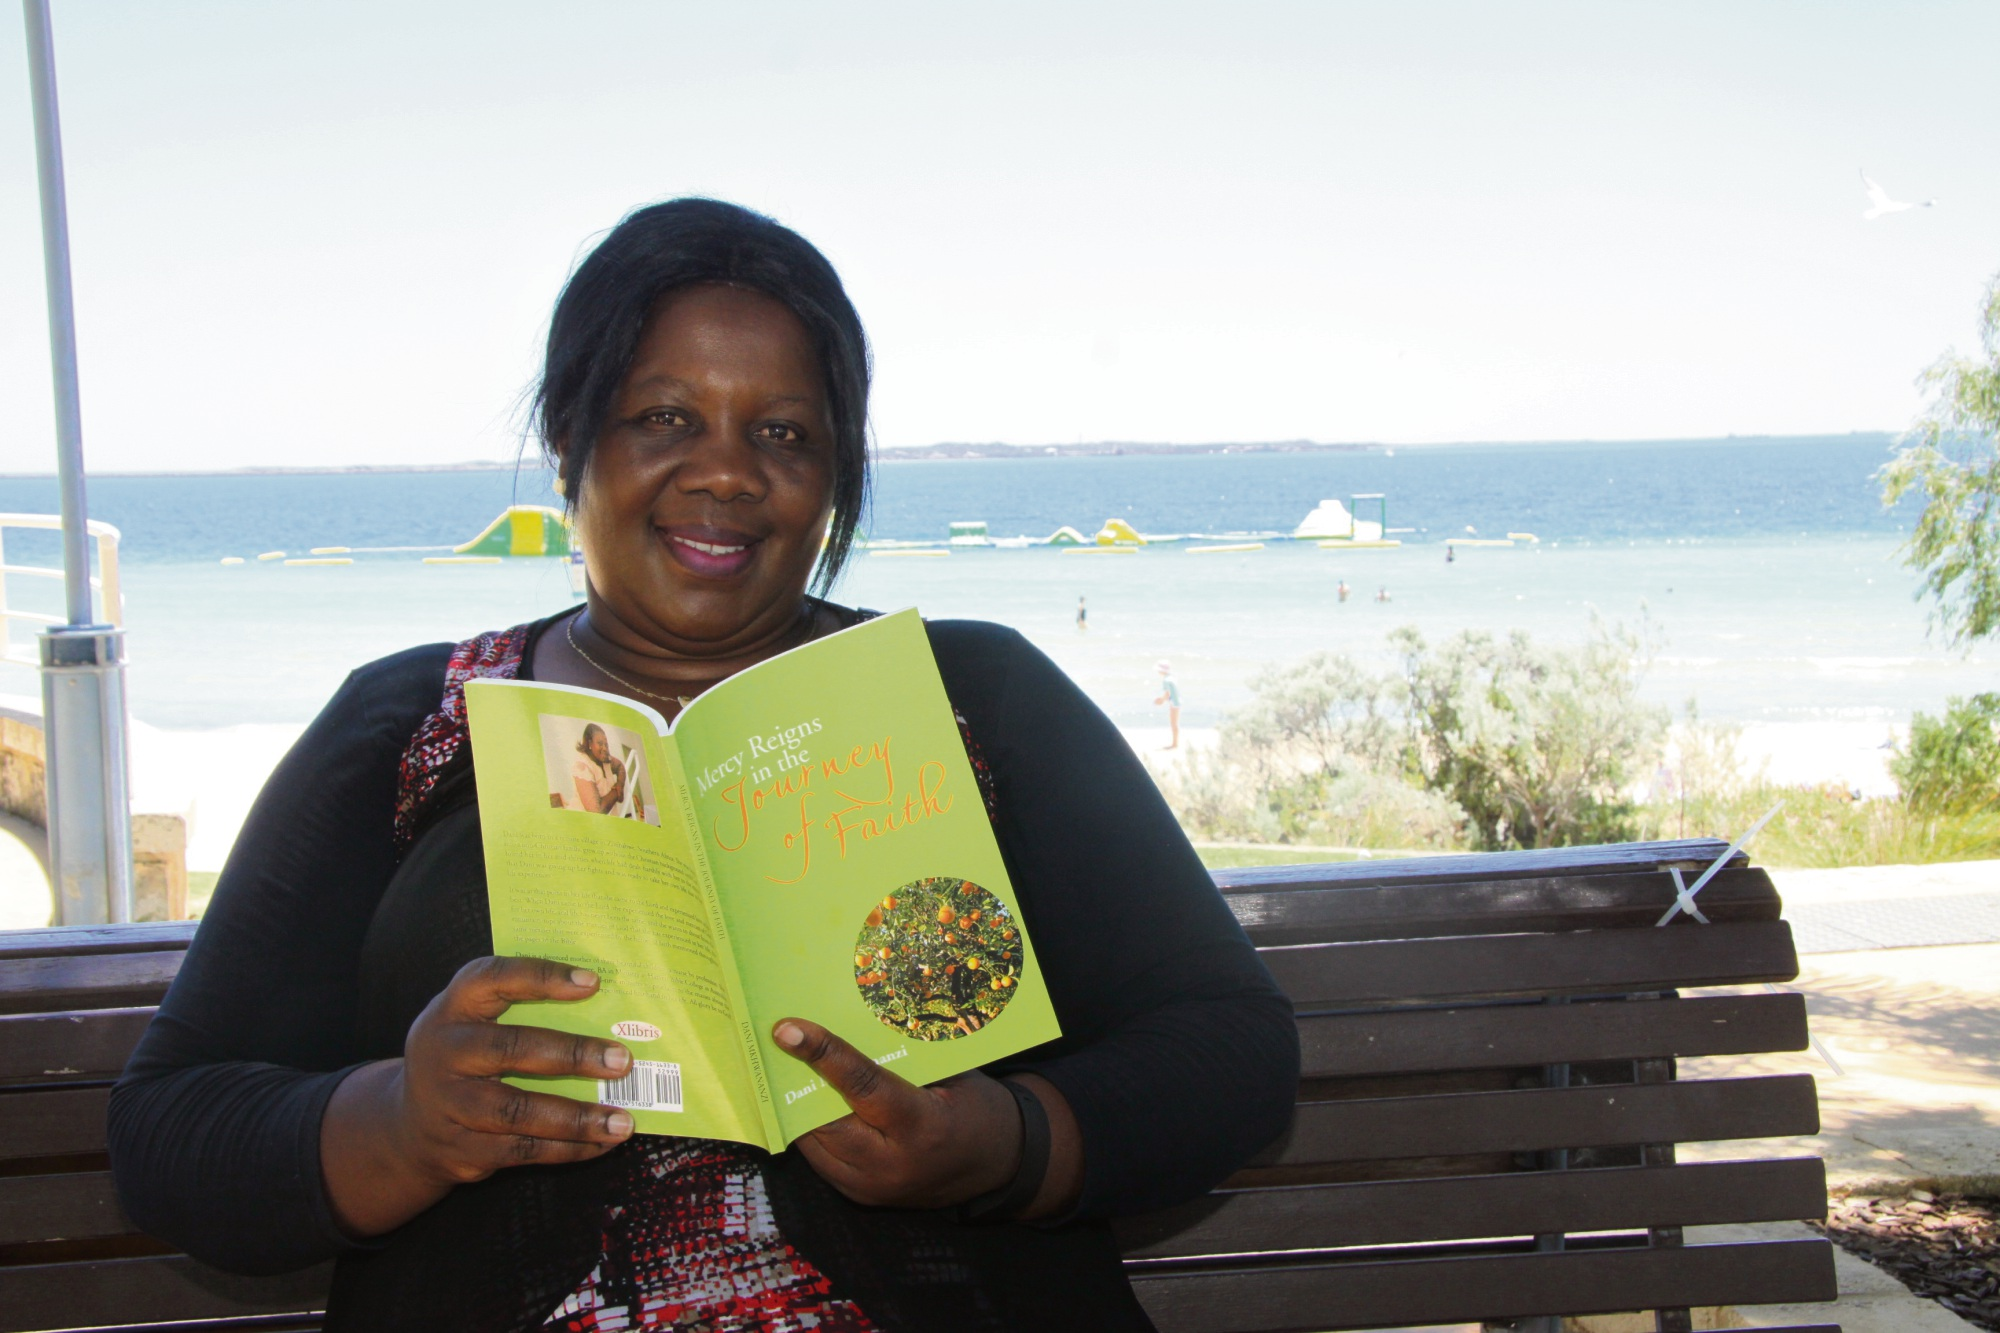 Dani Mkhwananzi has written a book about how her faith changed her life.